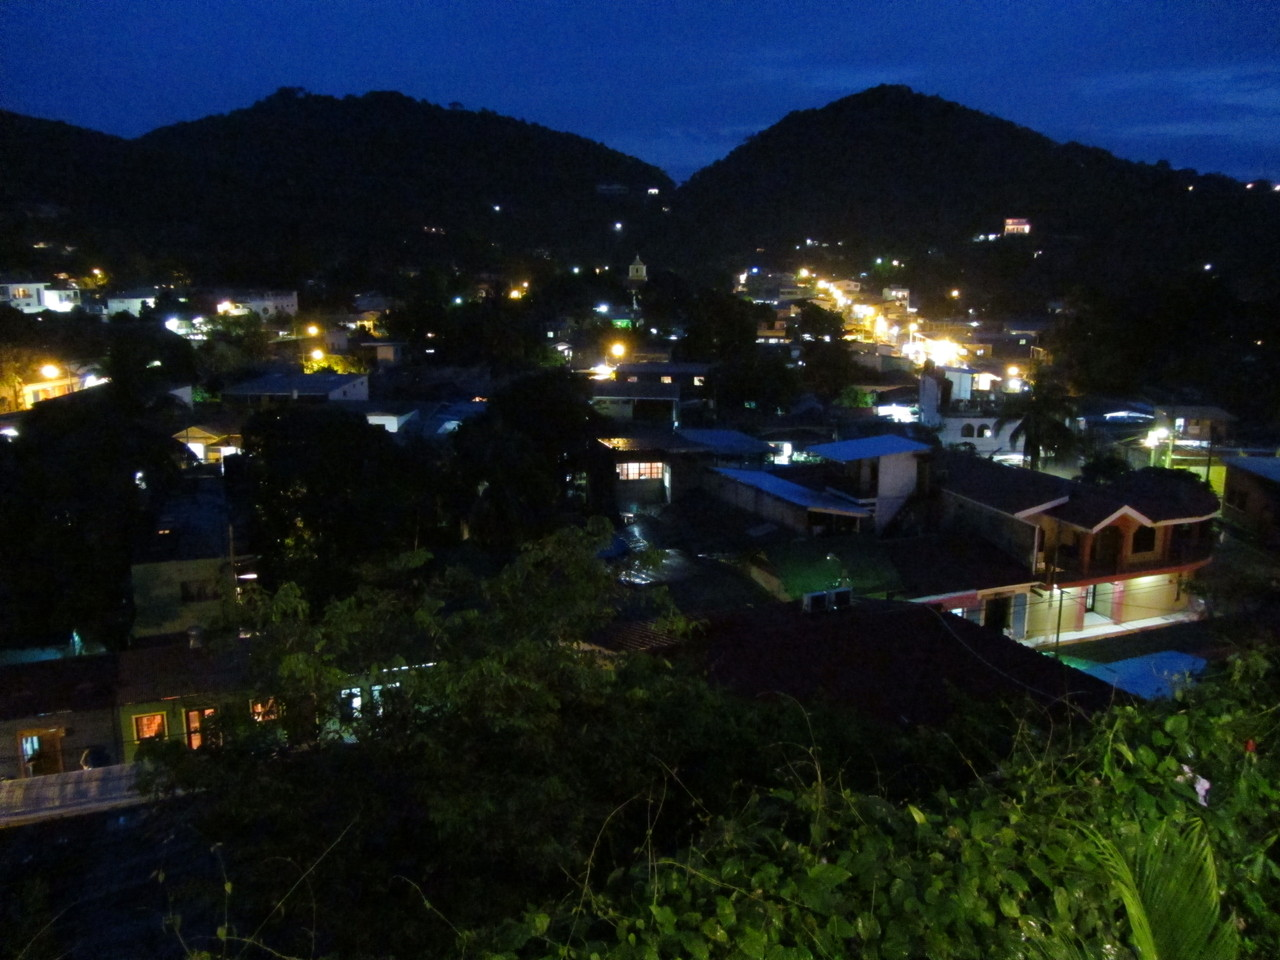 San Juan del Sur at night time